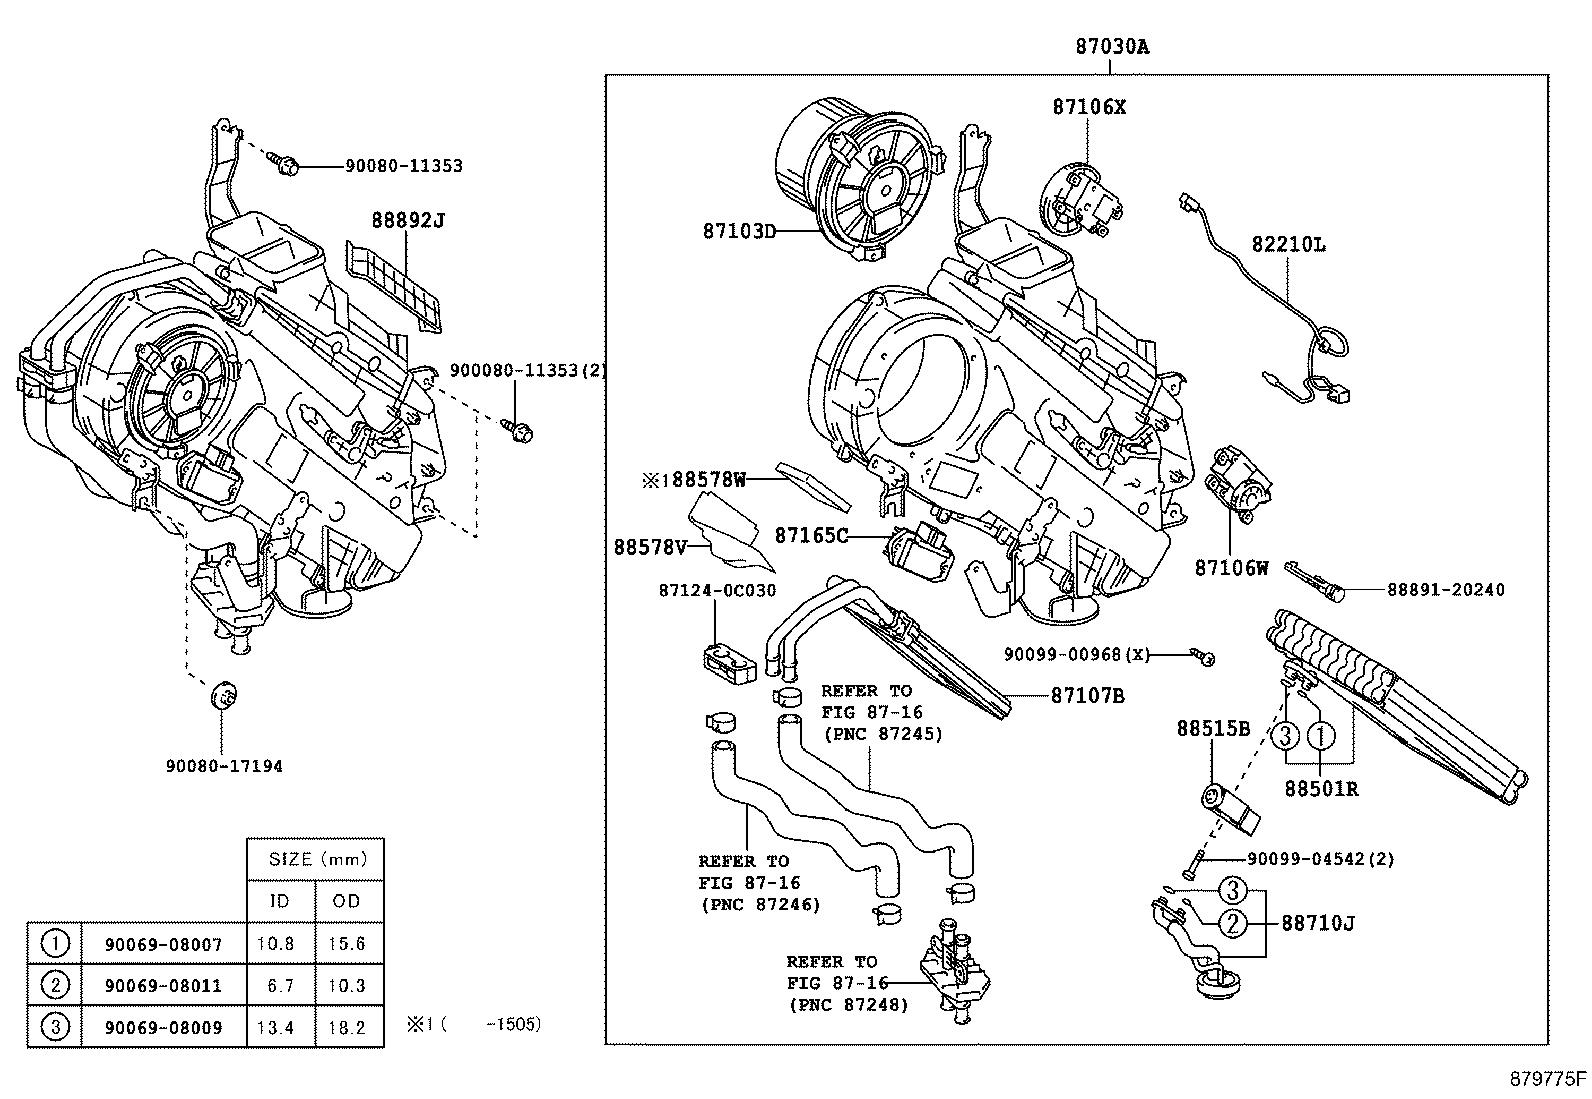 Windstar Fuse Box Diagram 6 10 From 15 Votes 1998 Ford Windstar Fuse